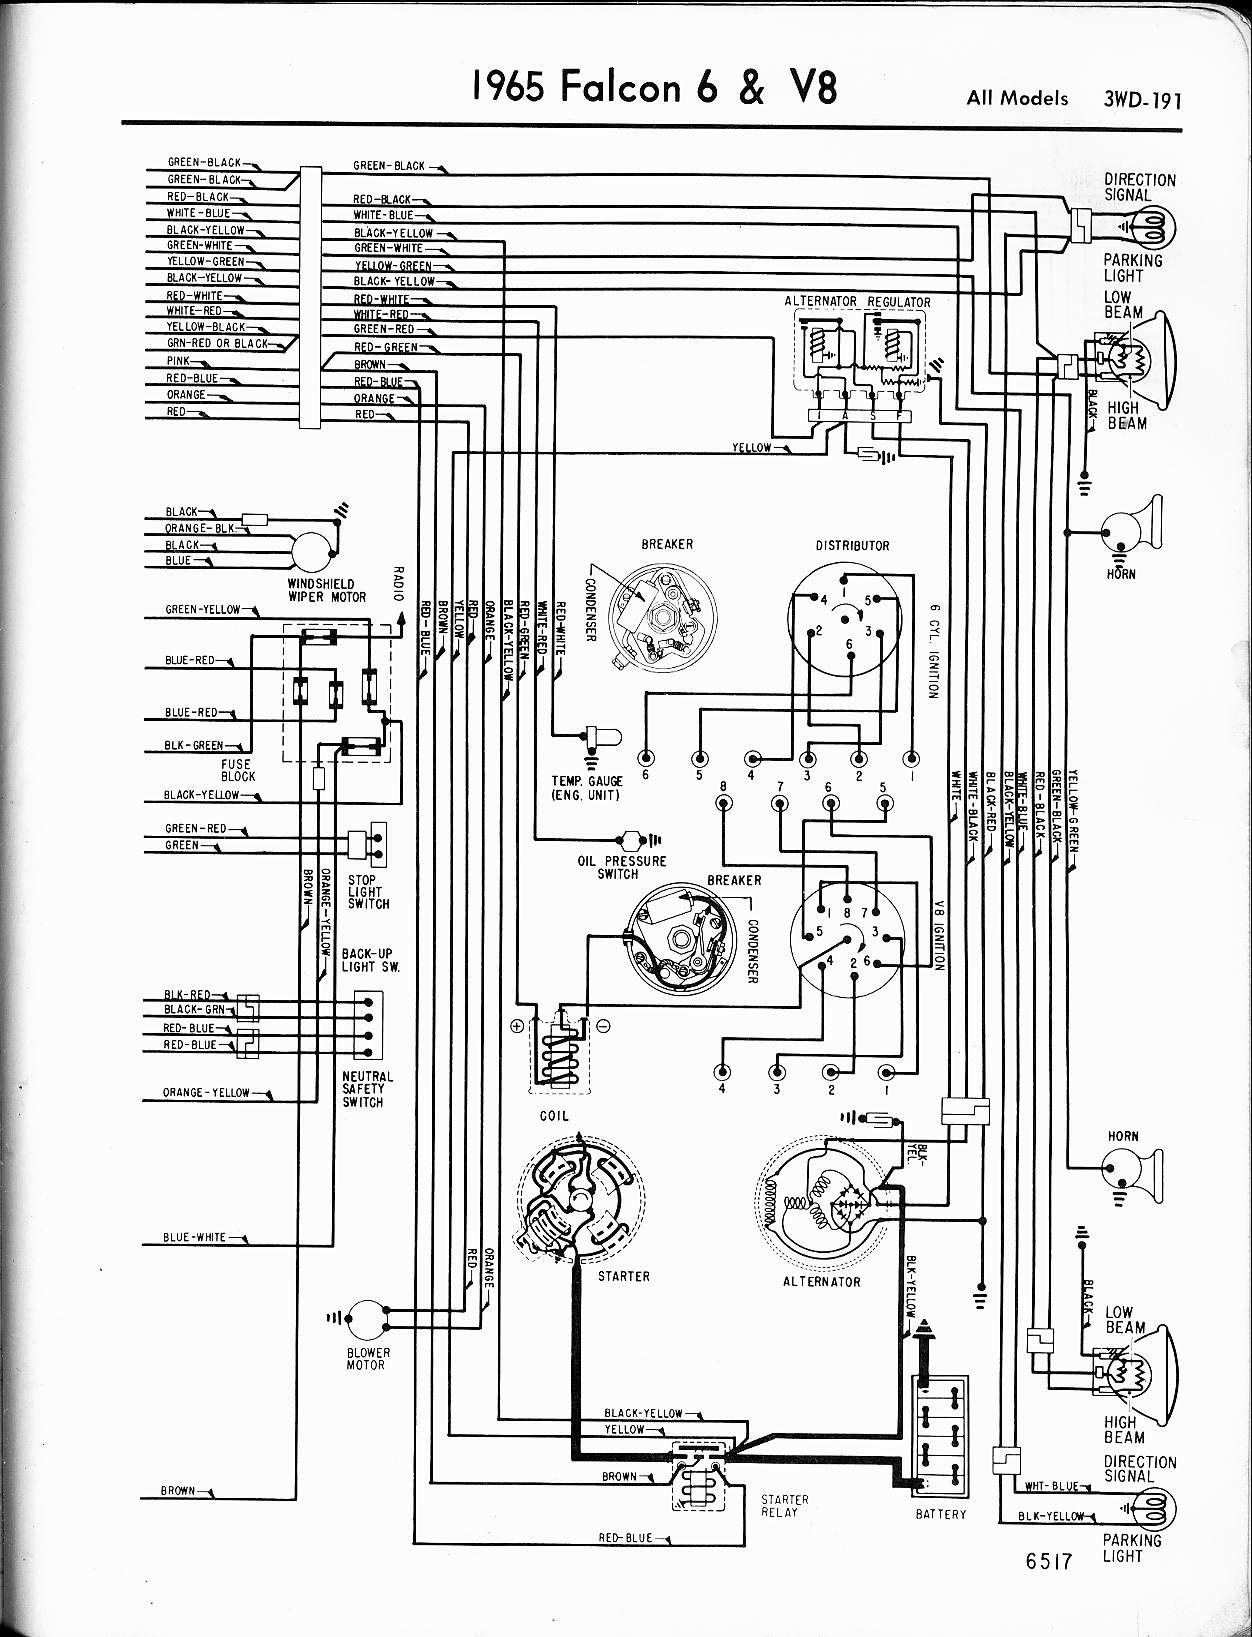 SA_9307] 1965 Ford 6 And V8 Galaxie Part 1 Wiring Diagram Automotive Wiring  Download DiagramDome Carn Vira Mohammedshrine Librar Wiring 101